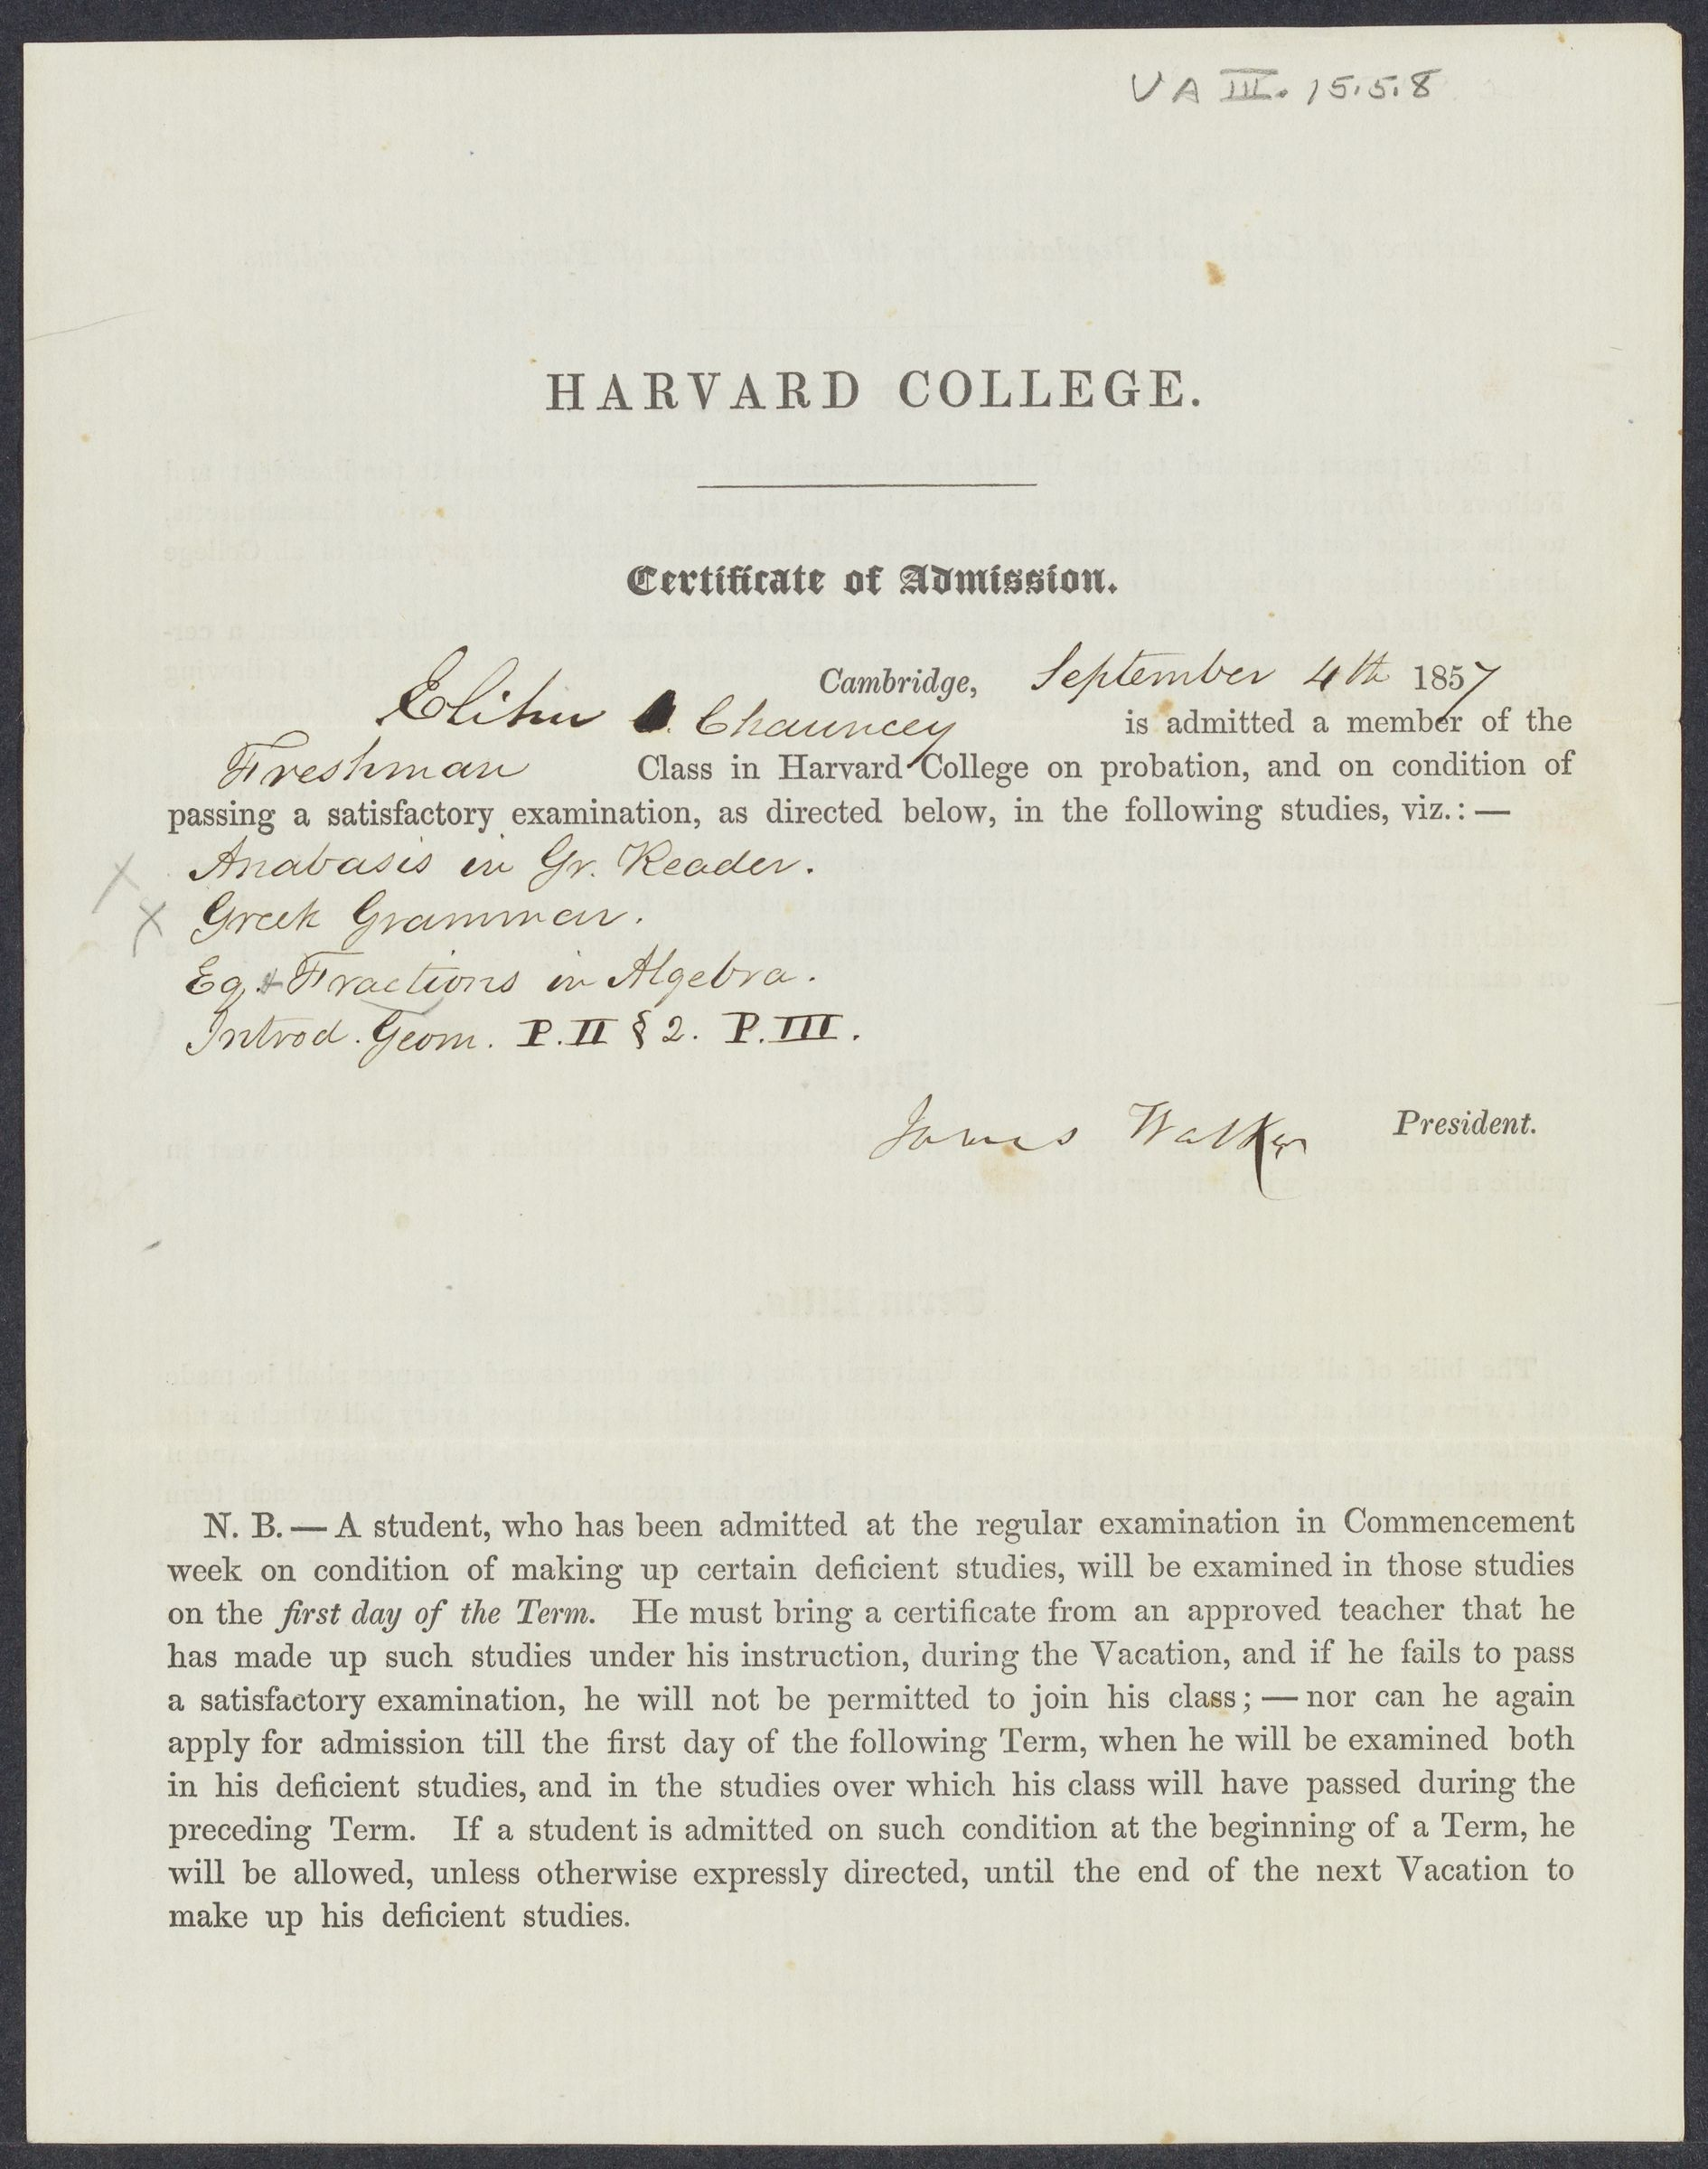 [Certificate of admission of Elihu Chauncey], 1857 September 4